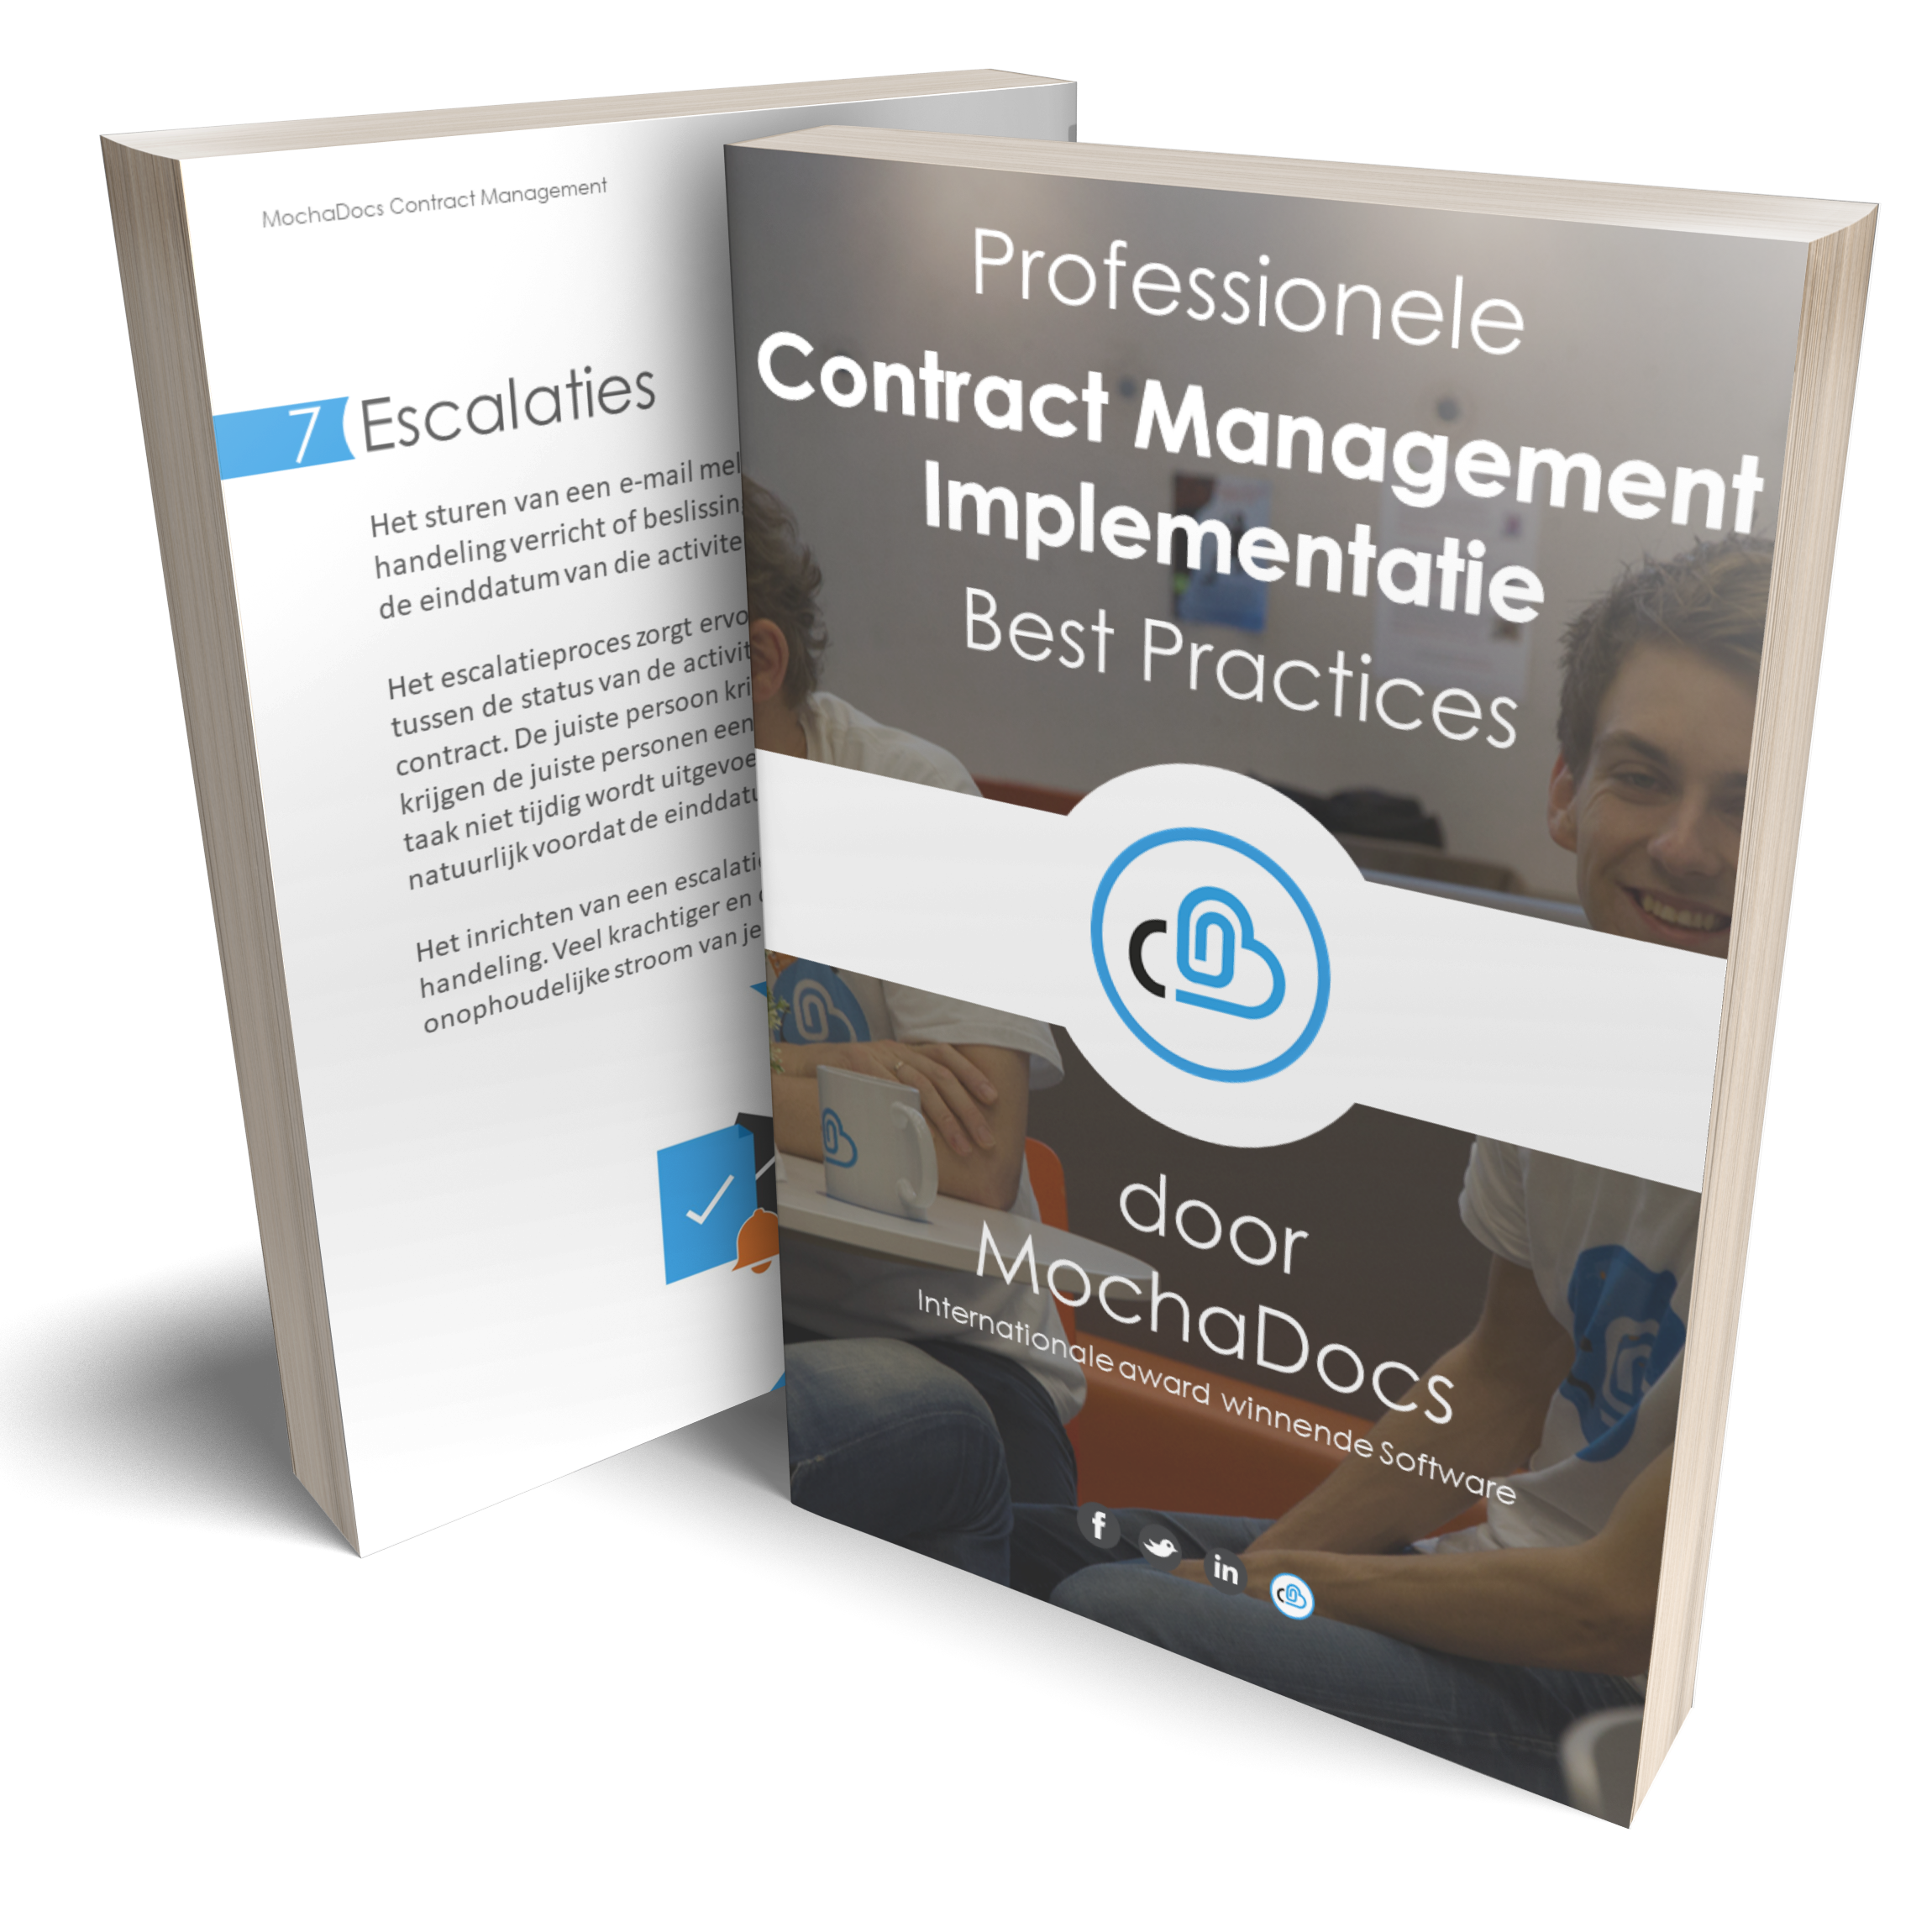 Professionele Contract Management Implementatie best practices